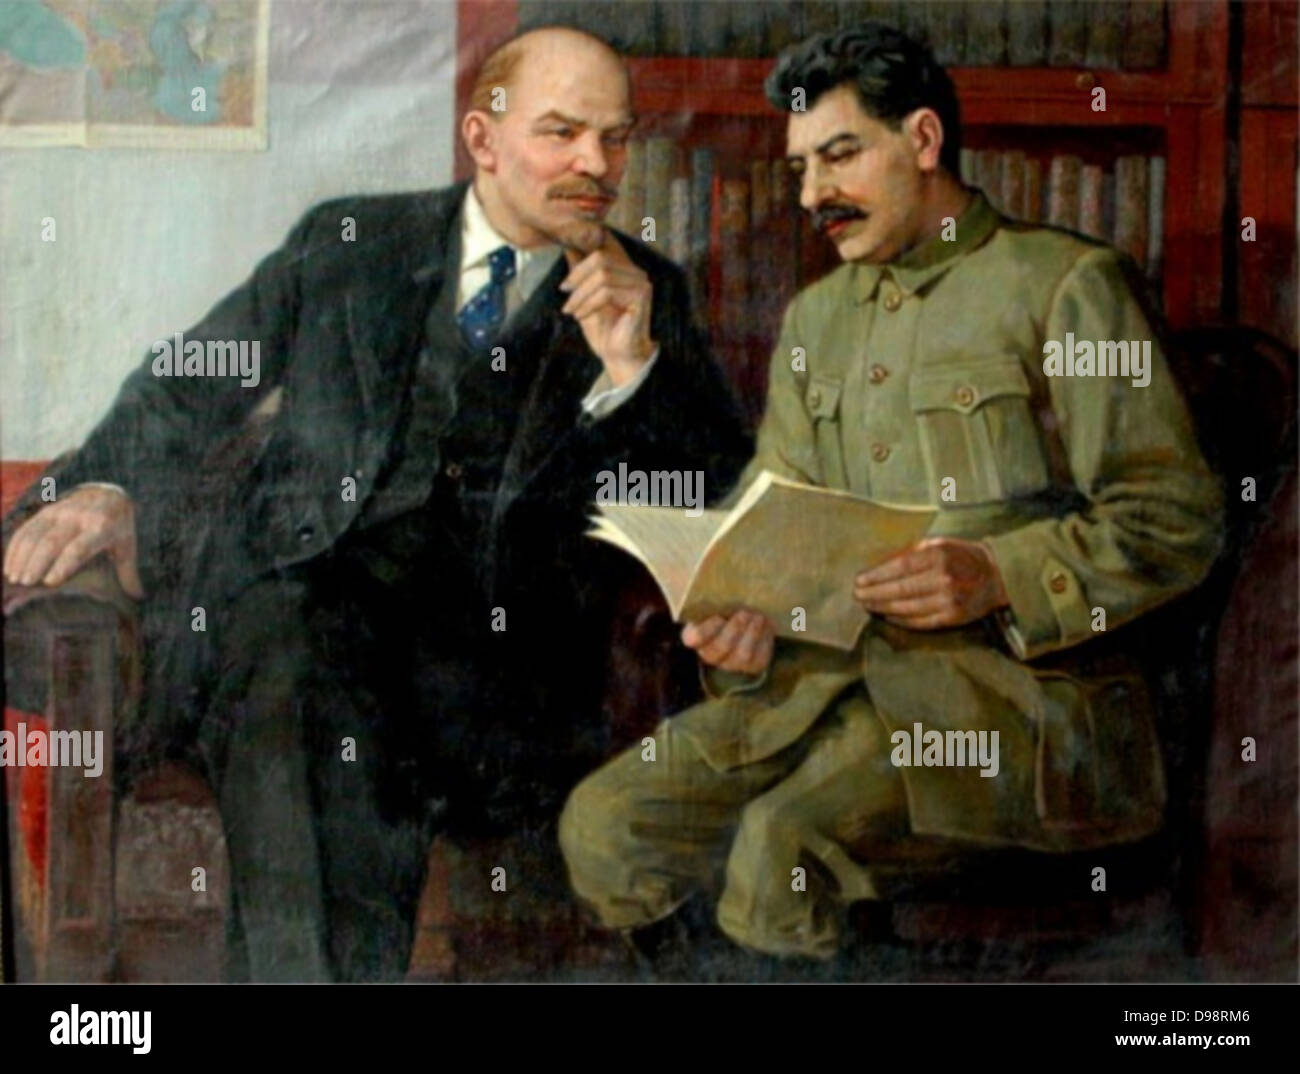 Vladimir Lenin and Joseph Stalin 1920-22 painted by vasilev - Stock Image